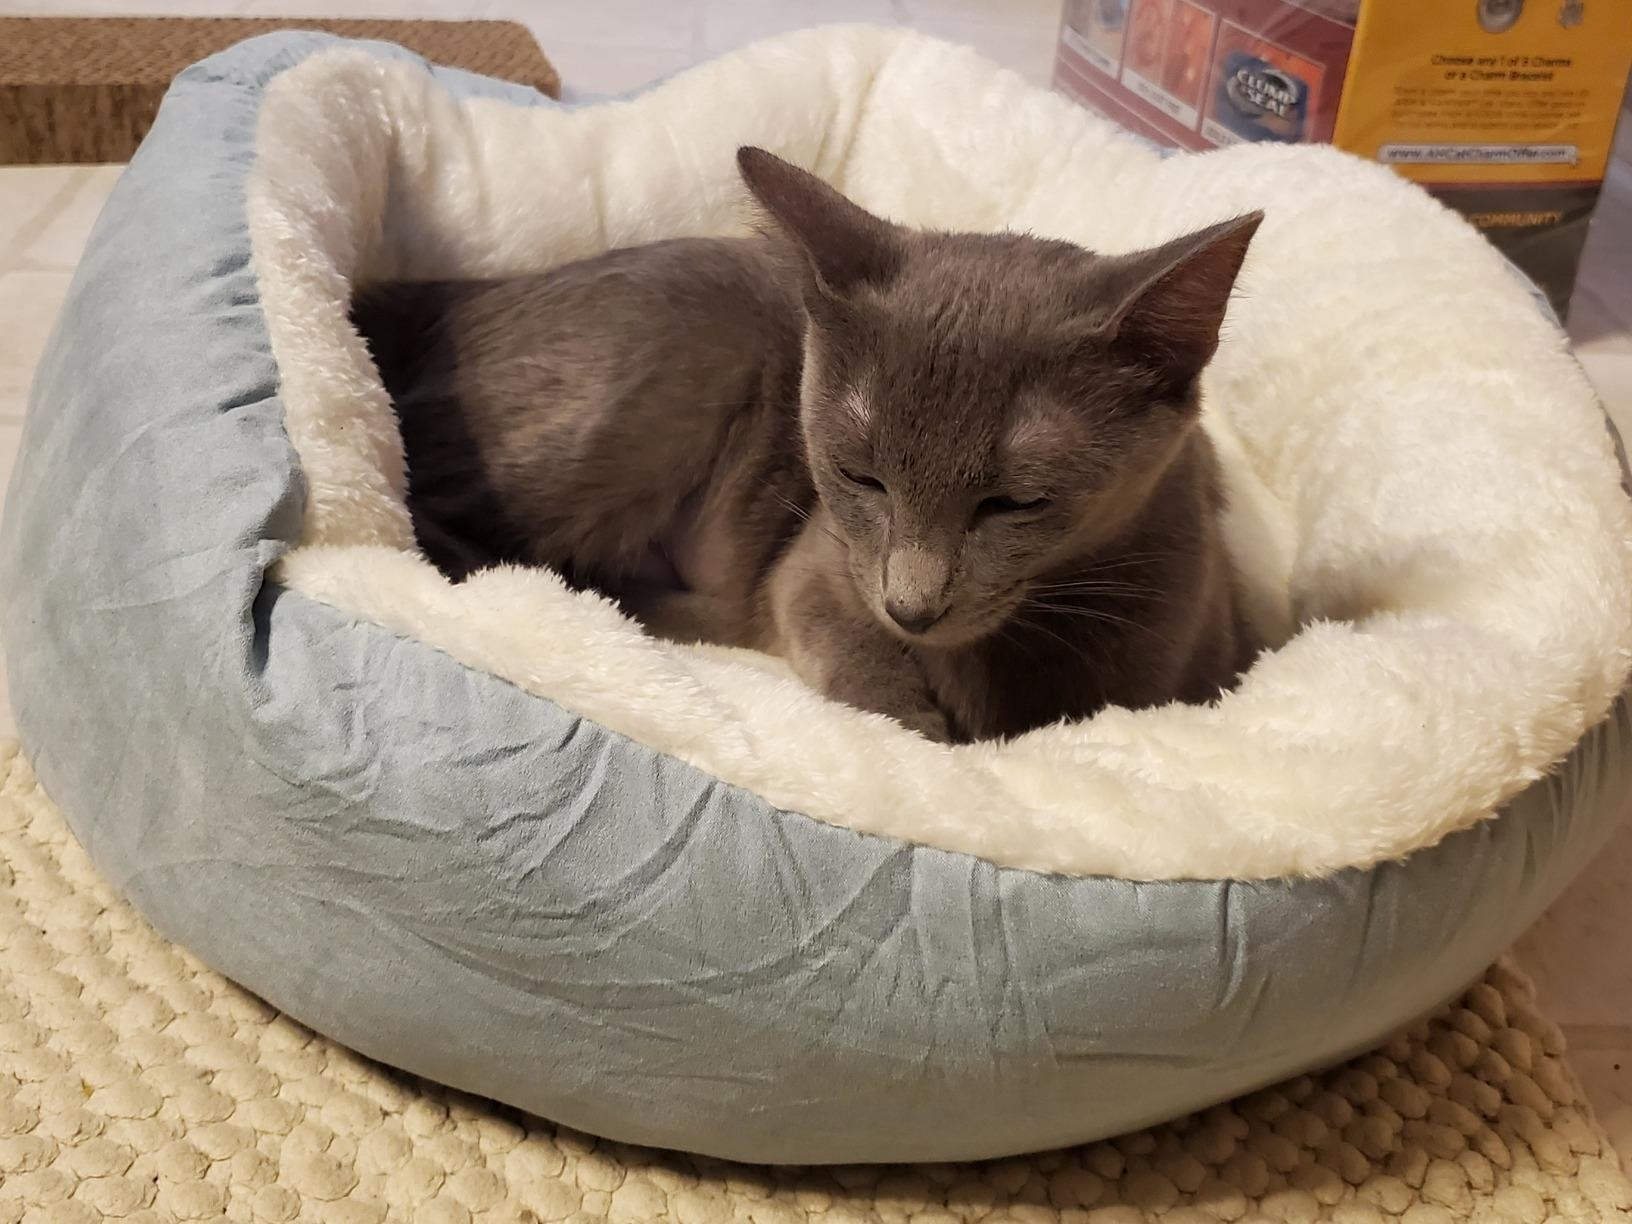 The donut bed, which is round and has a sunken middle section covered in sherpa-like material